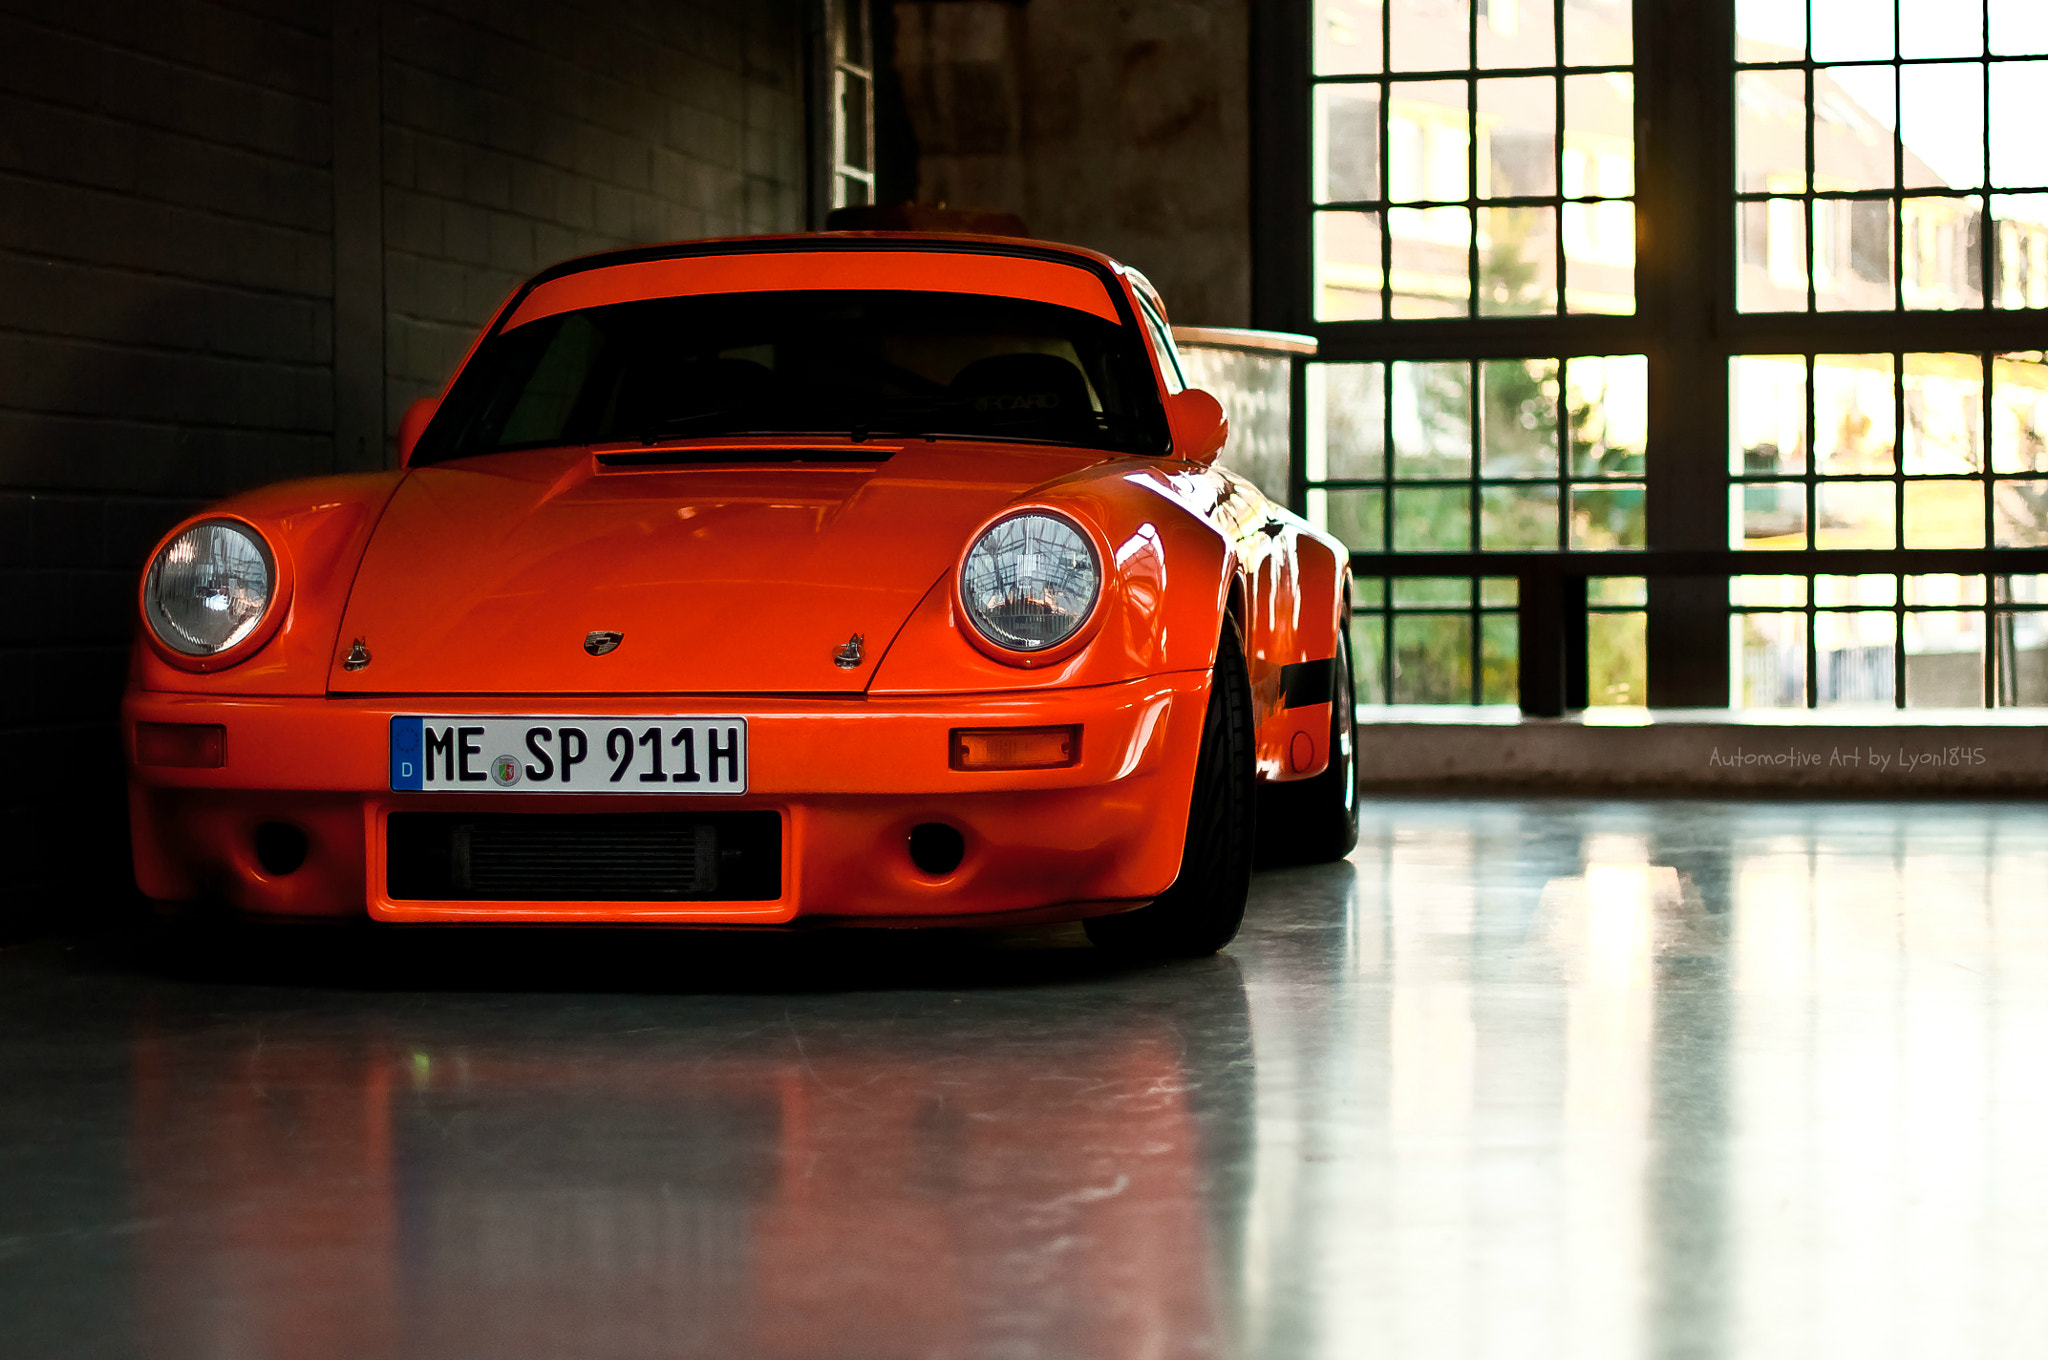 Photograph Porsche Carrera RS by lyon1845 on 500px